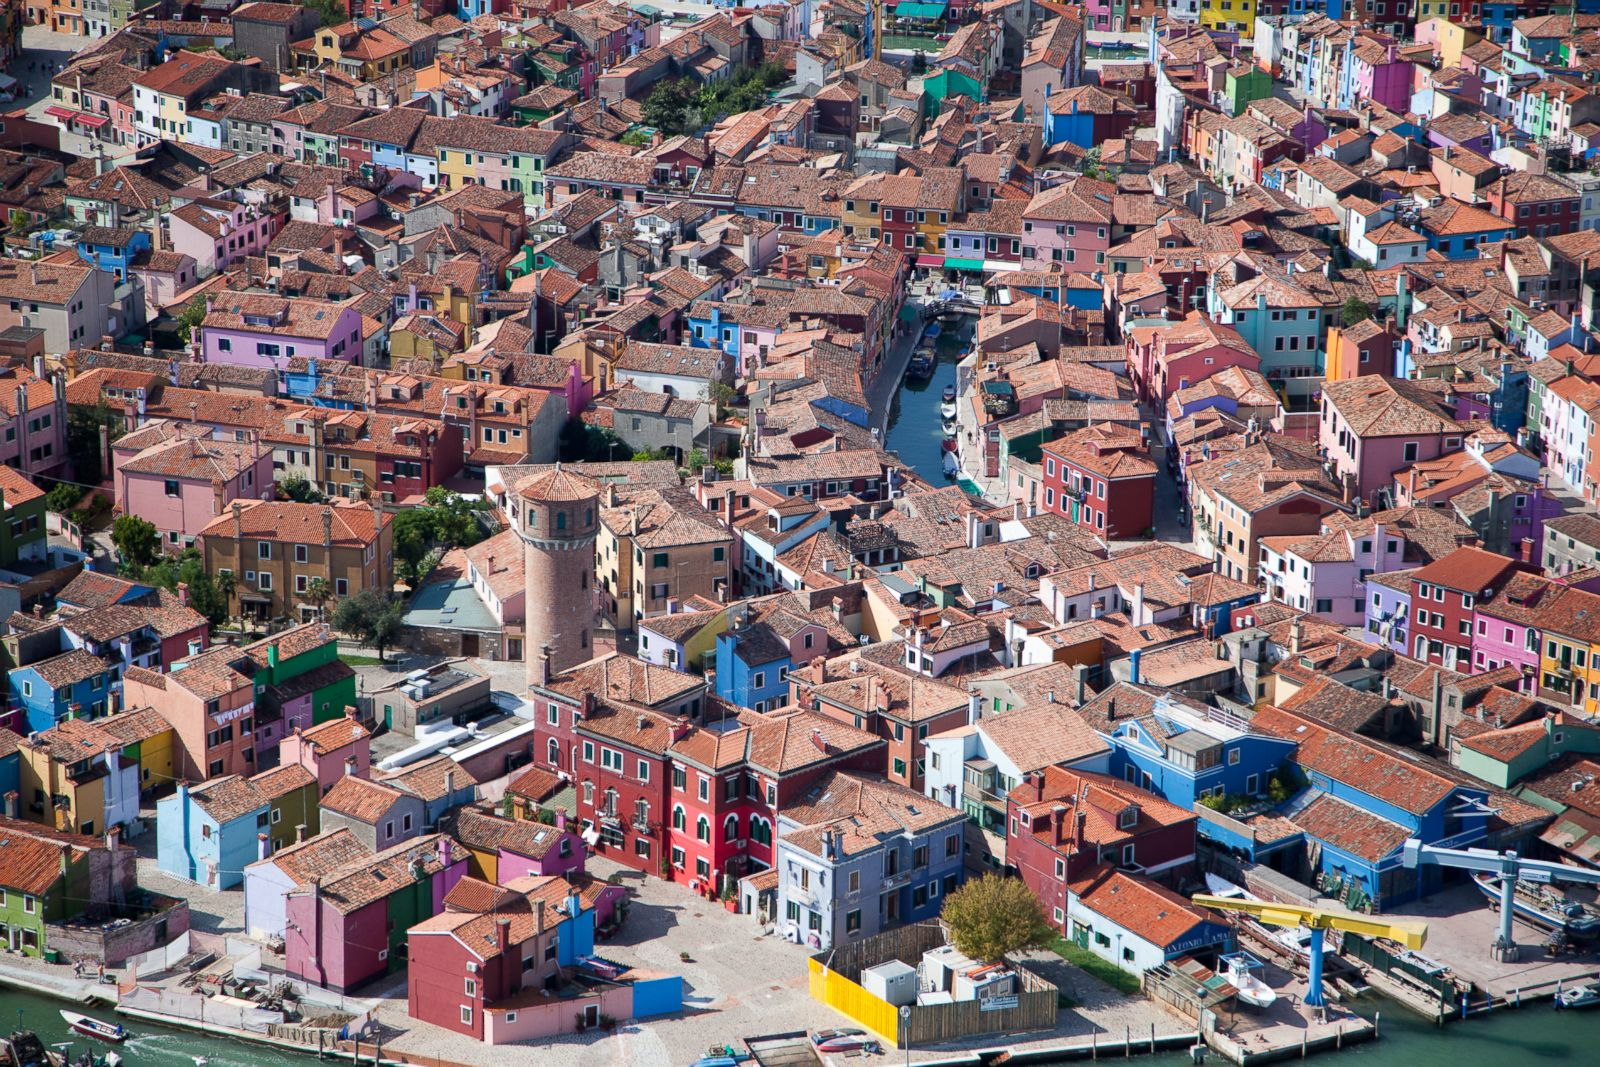 Brightly painted houses in Burano, Italy